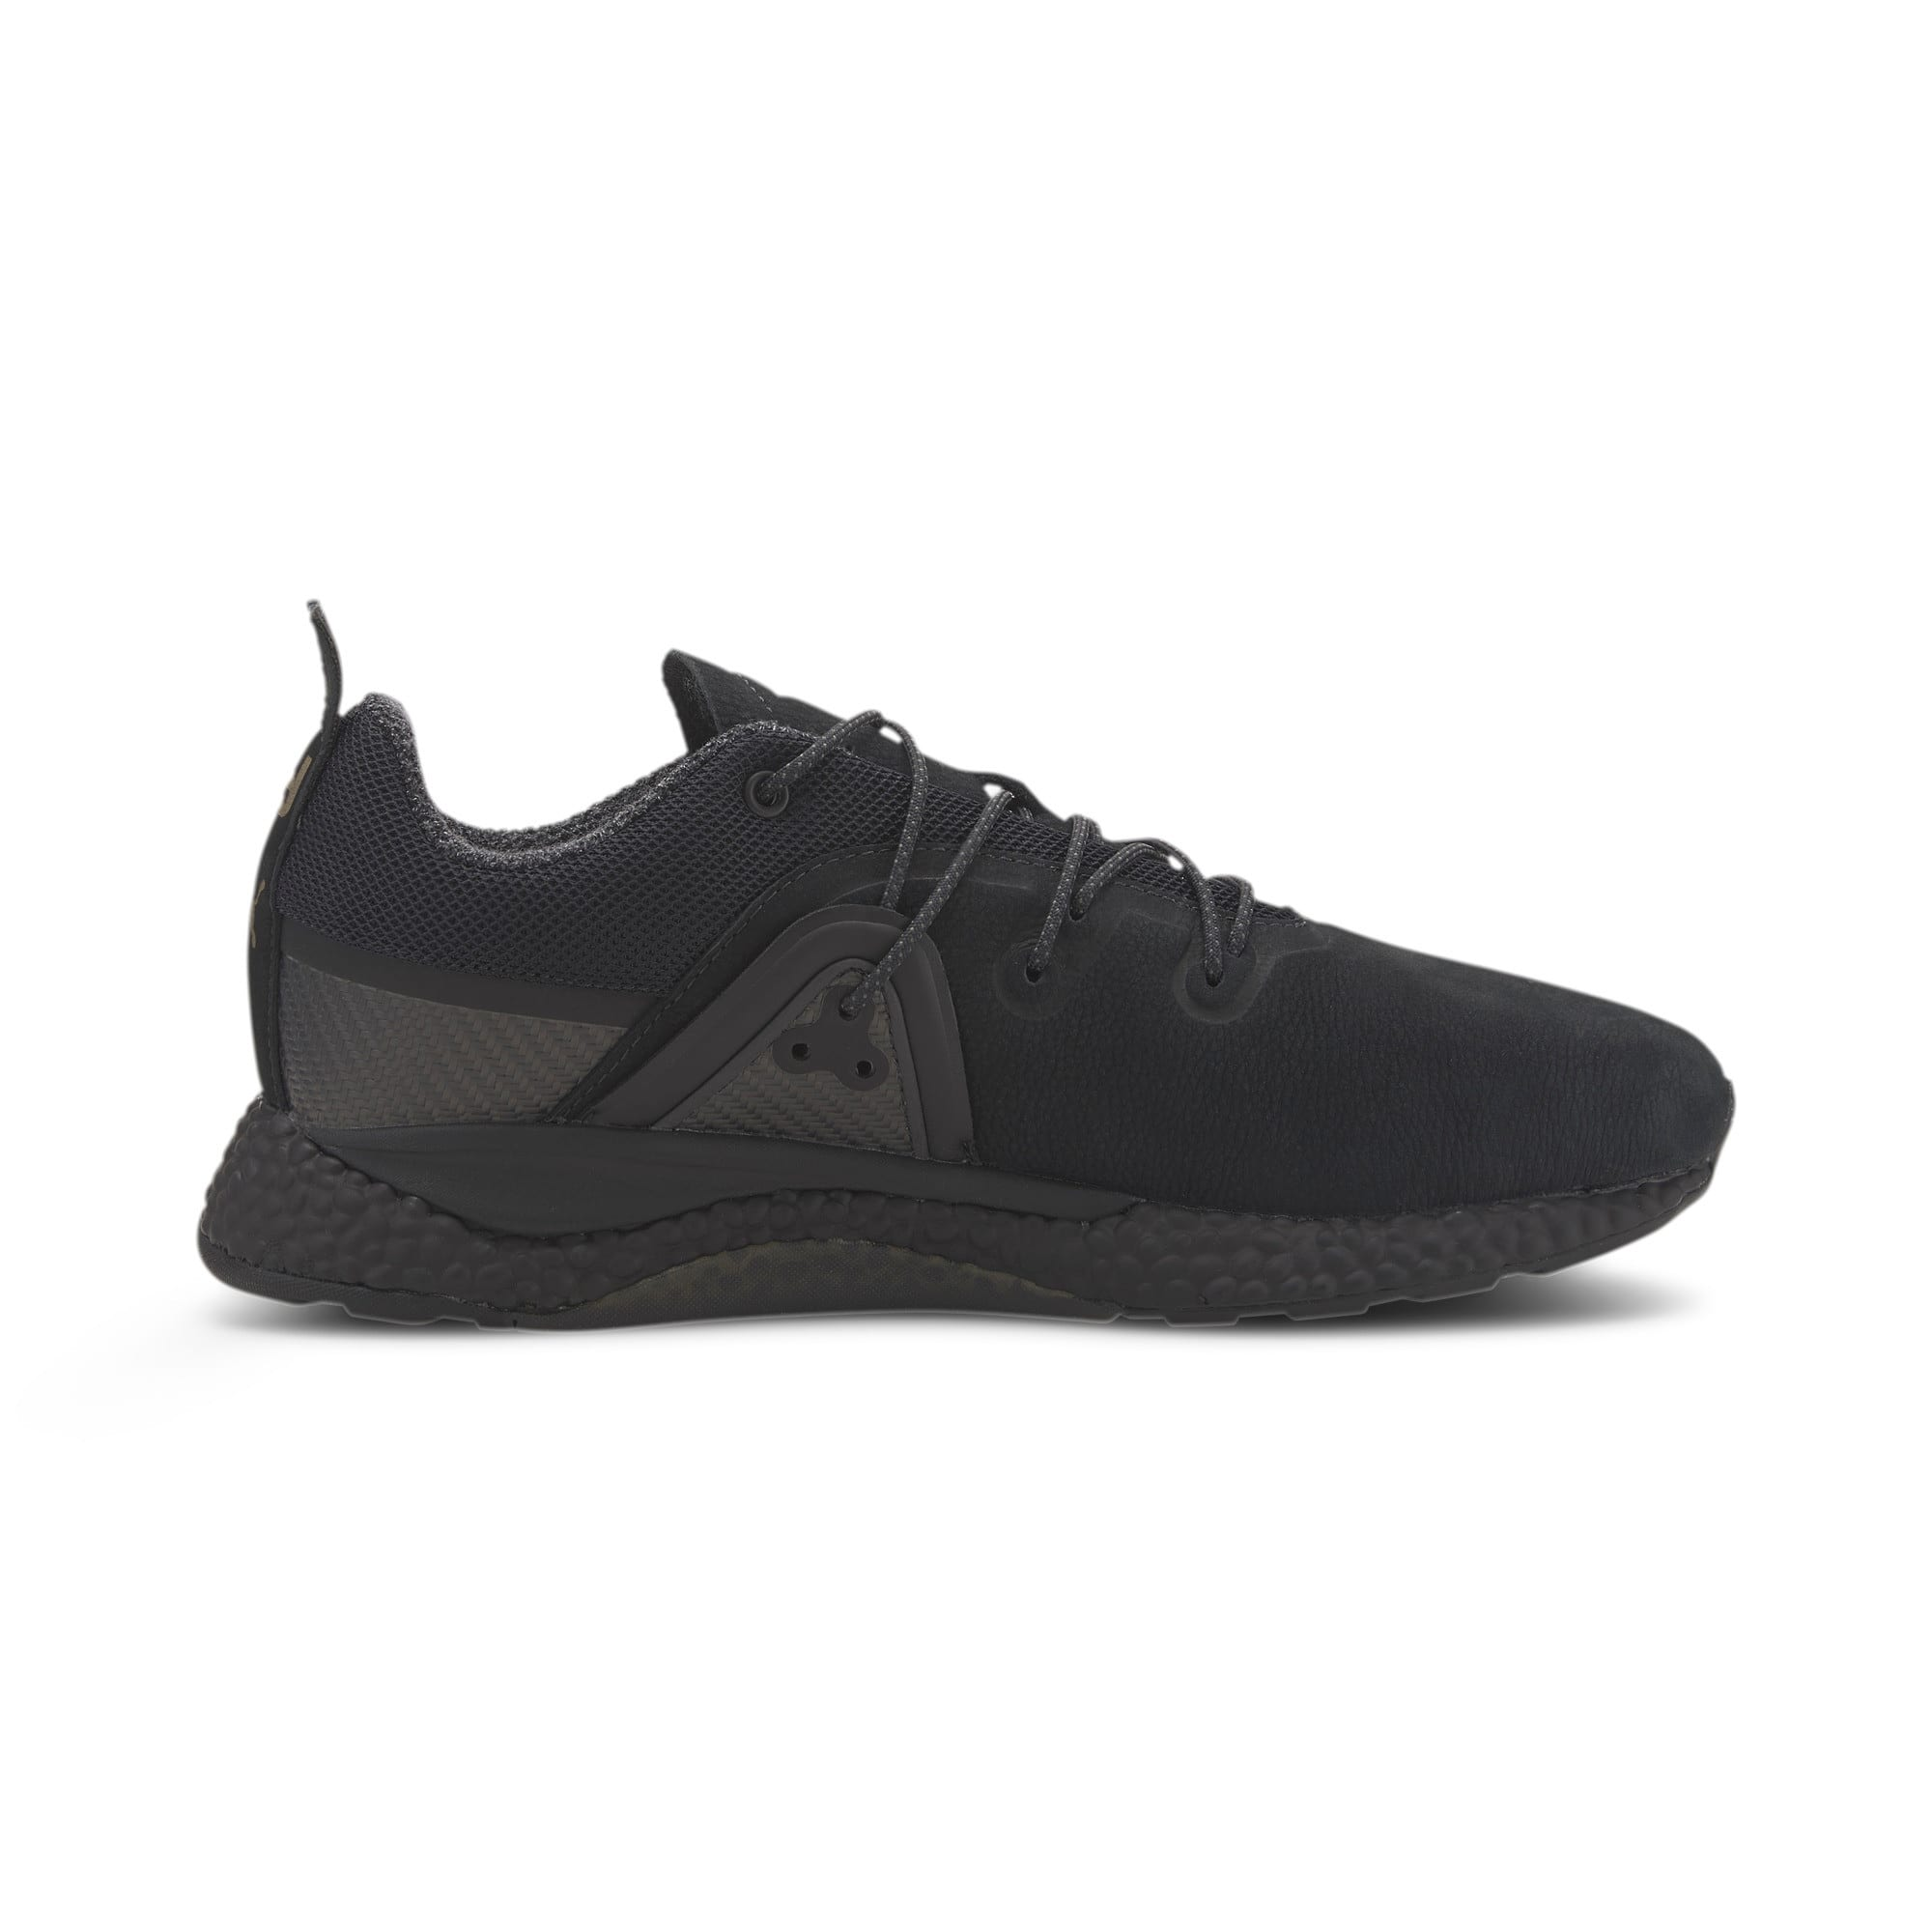 Thumbnail 6 of Porsche Design HYBRID Runner Herren Sneaker, Jet Black-Jet Black, medium